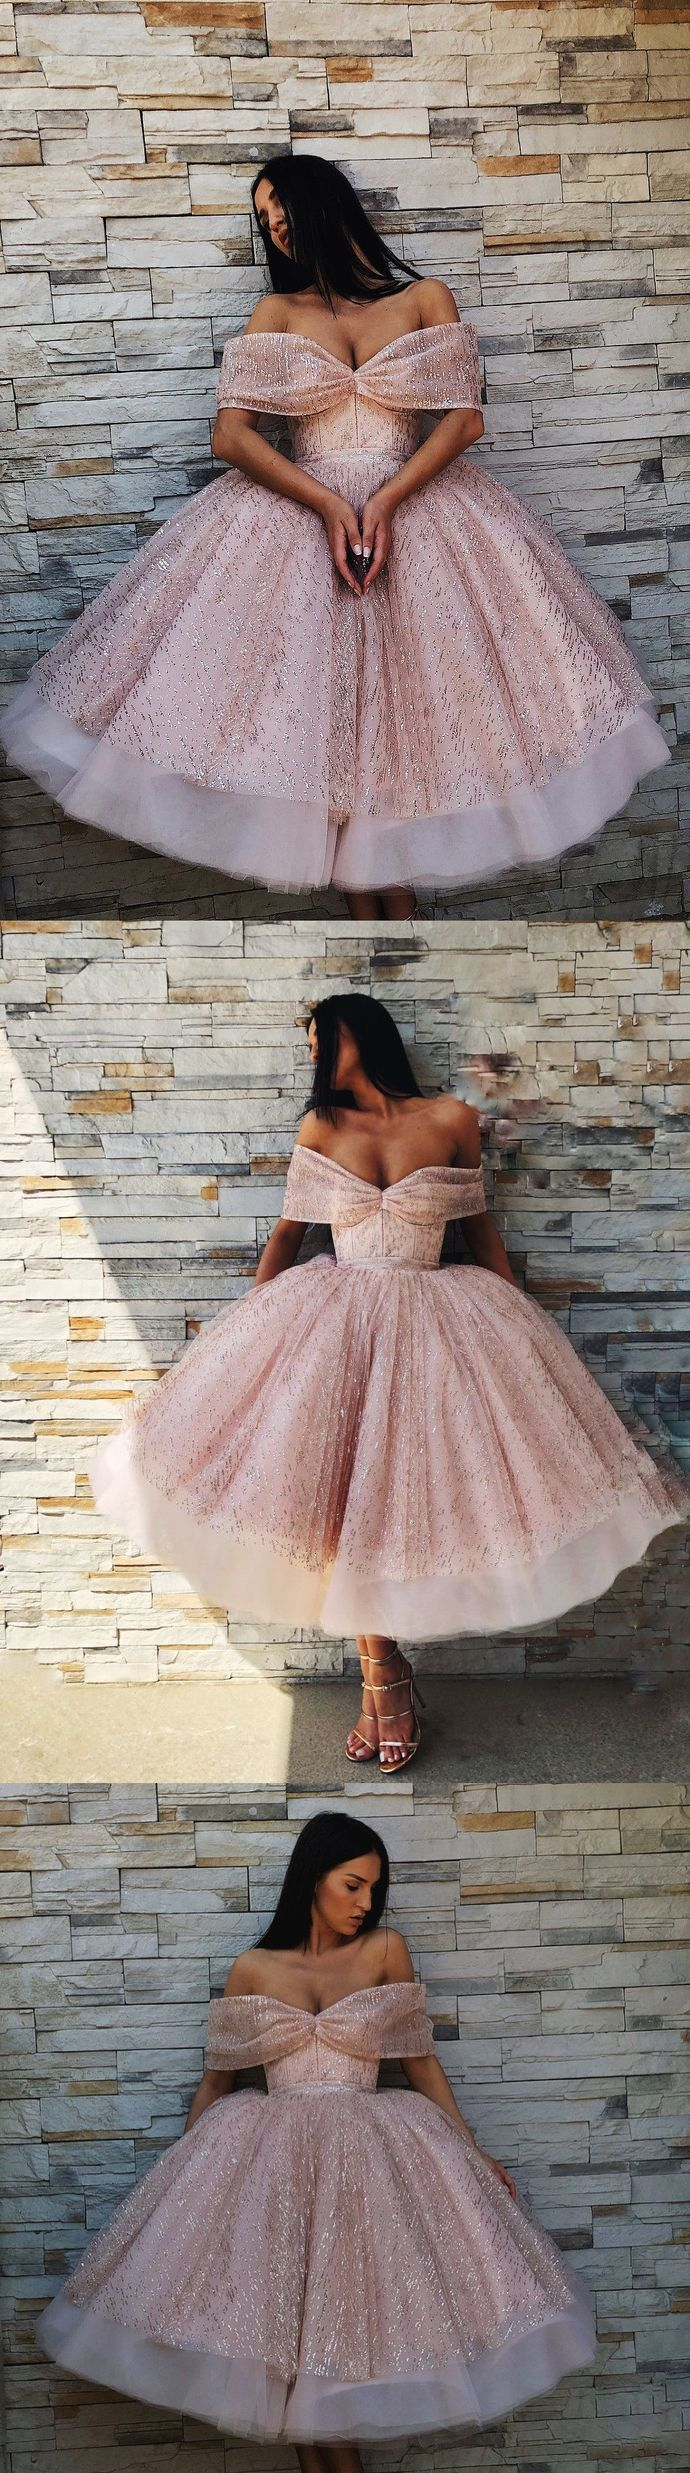 CHIC A-LINE PINK OFF-THE-SHOULDER SHORT PROM DRESS SPARKLY HOMECOMING DRESSES